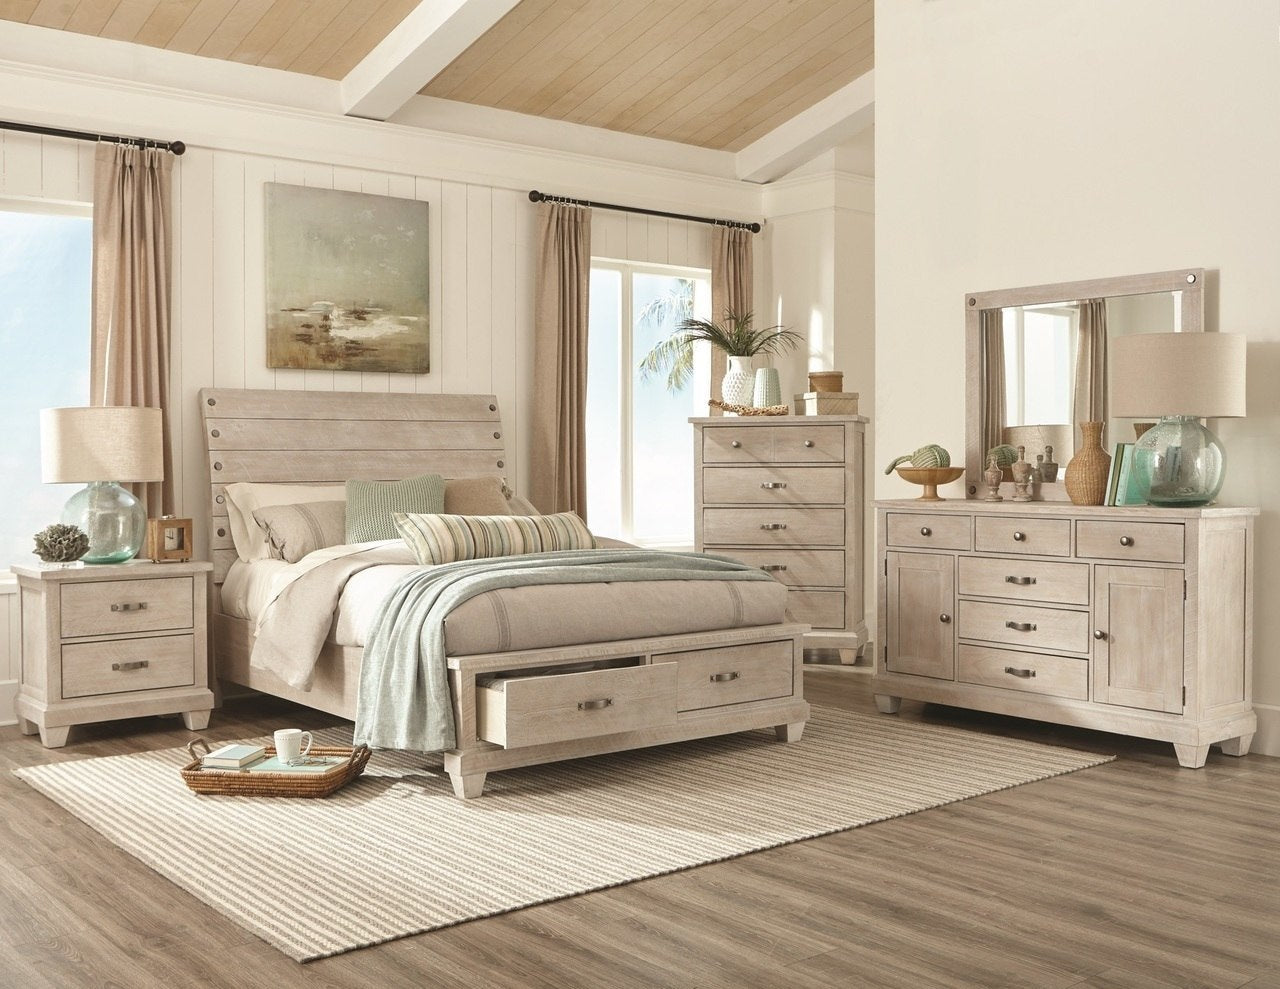 White Wash Country Queen Bedroom Set